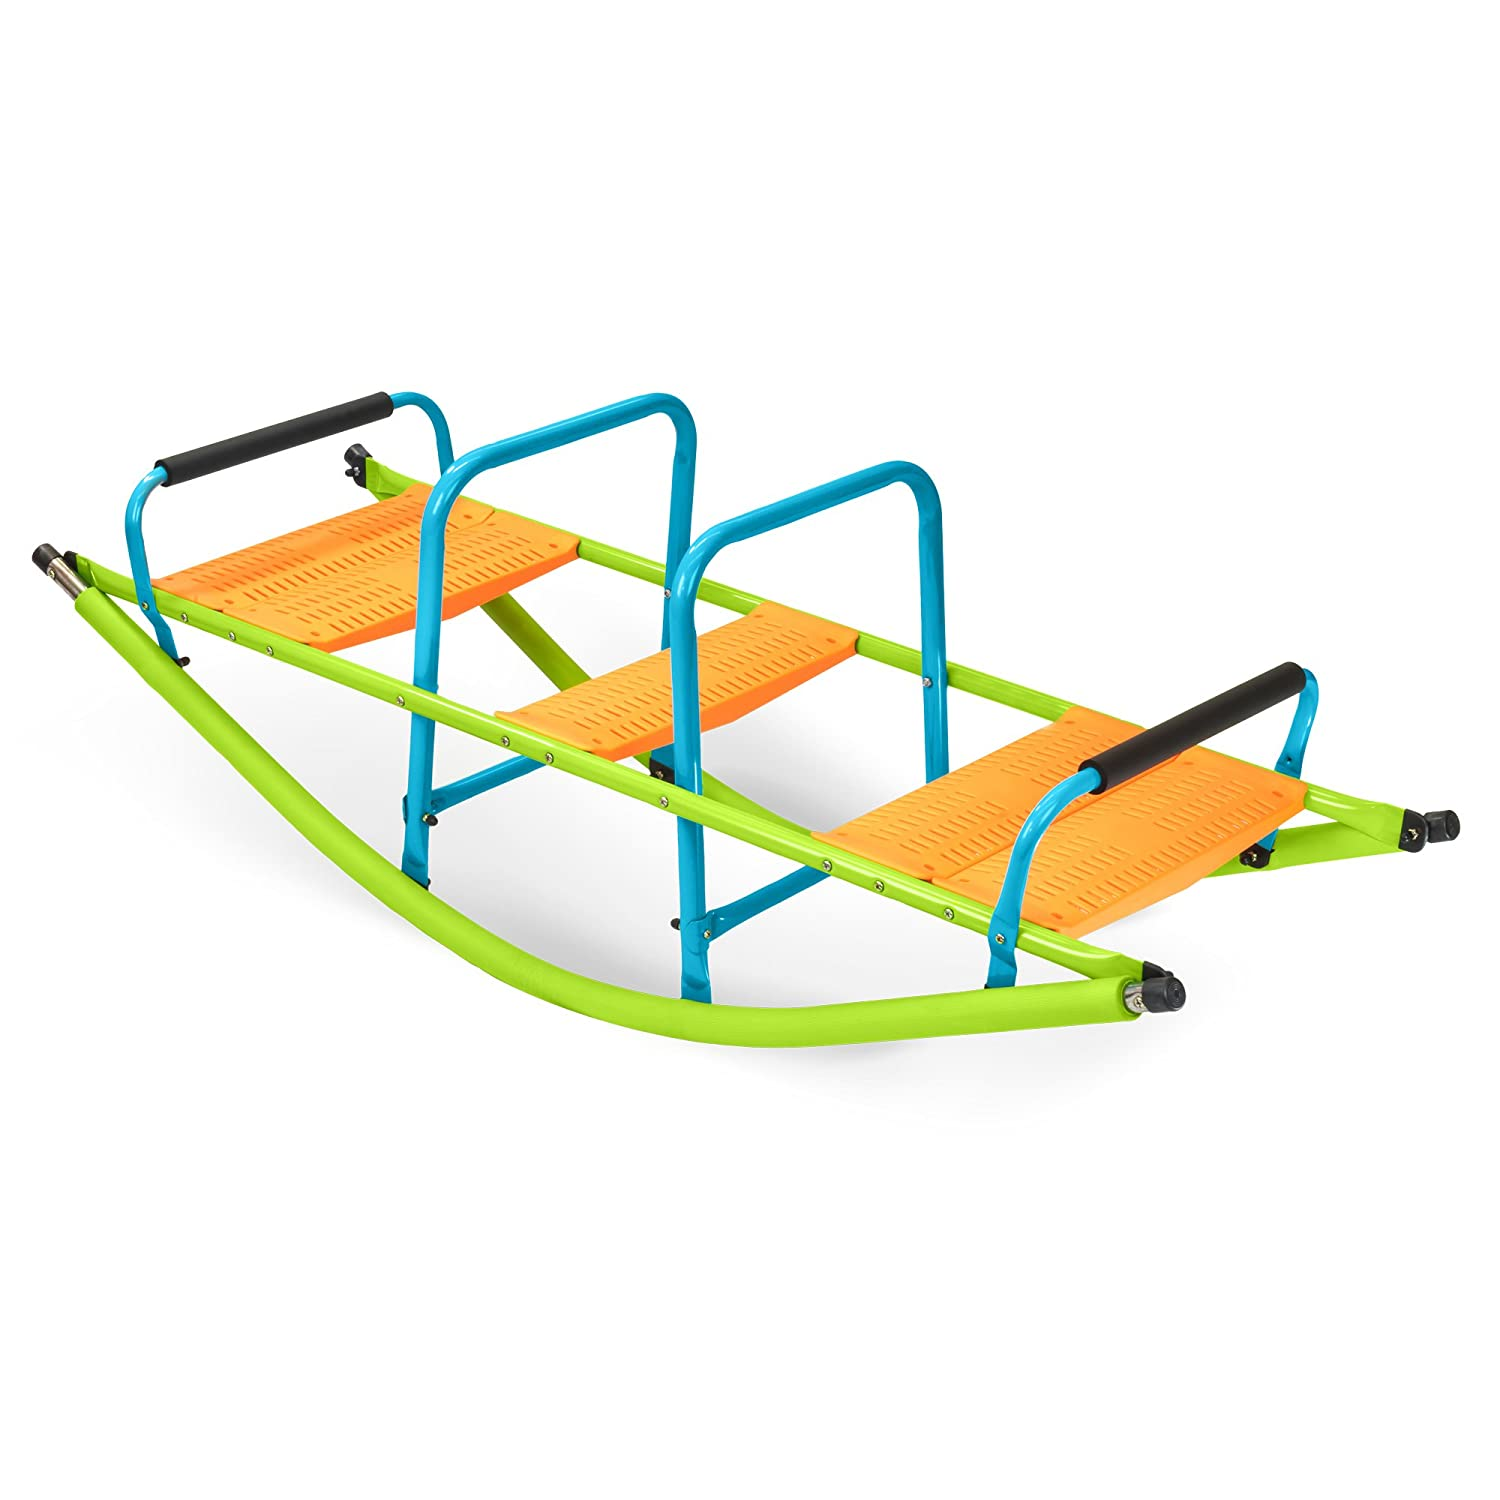 Pure Fun Home Playground Equipment: Rocker Seesaw, Youth Ages 4 to 10 Pure Global 9306RS